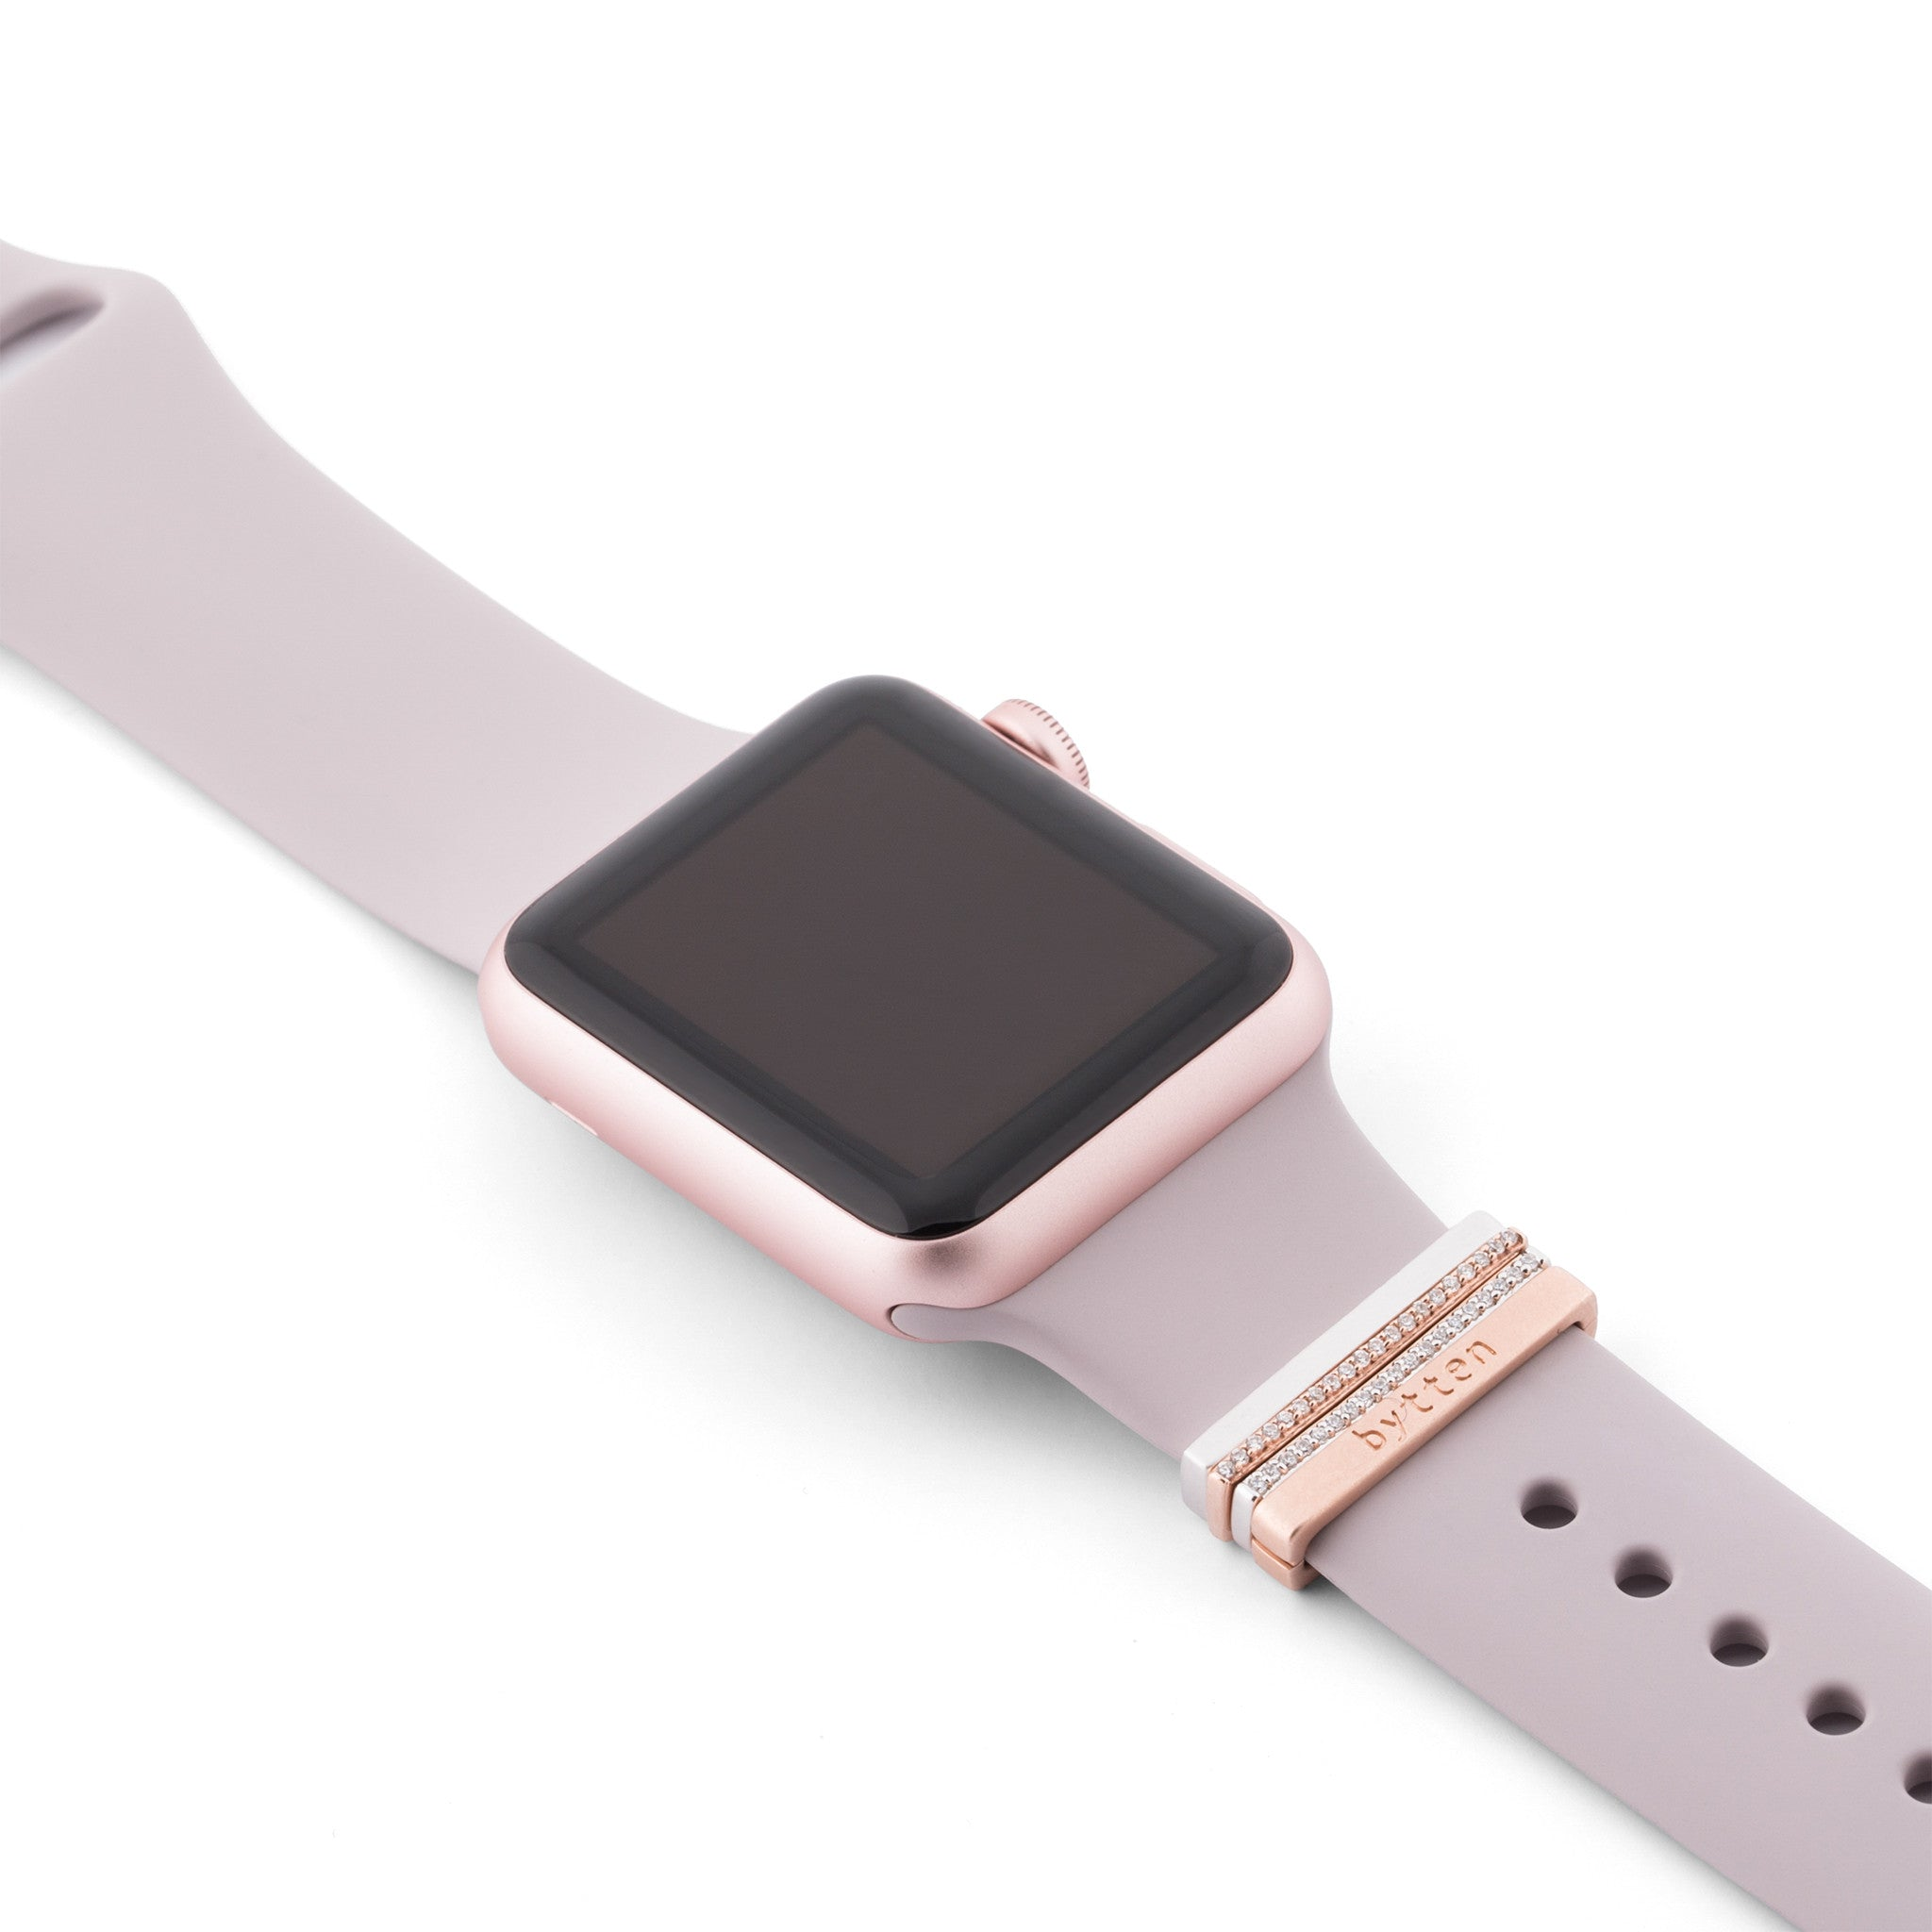 Rose Gold Apple Watch Sport on lavender band with Bytten Glam Stack - rose gold